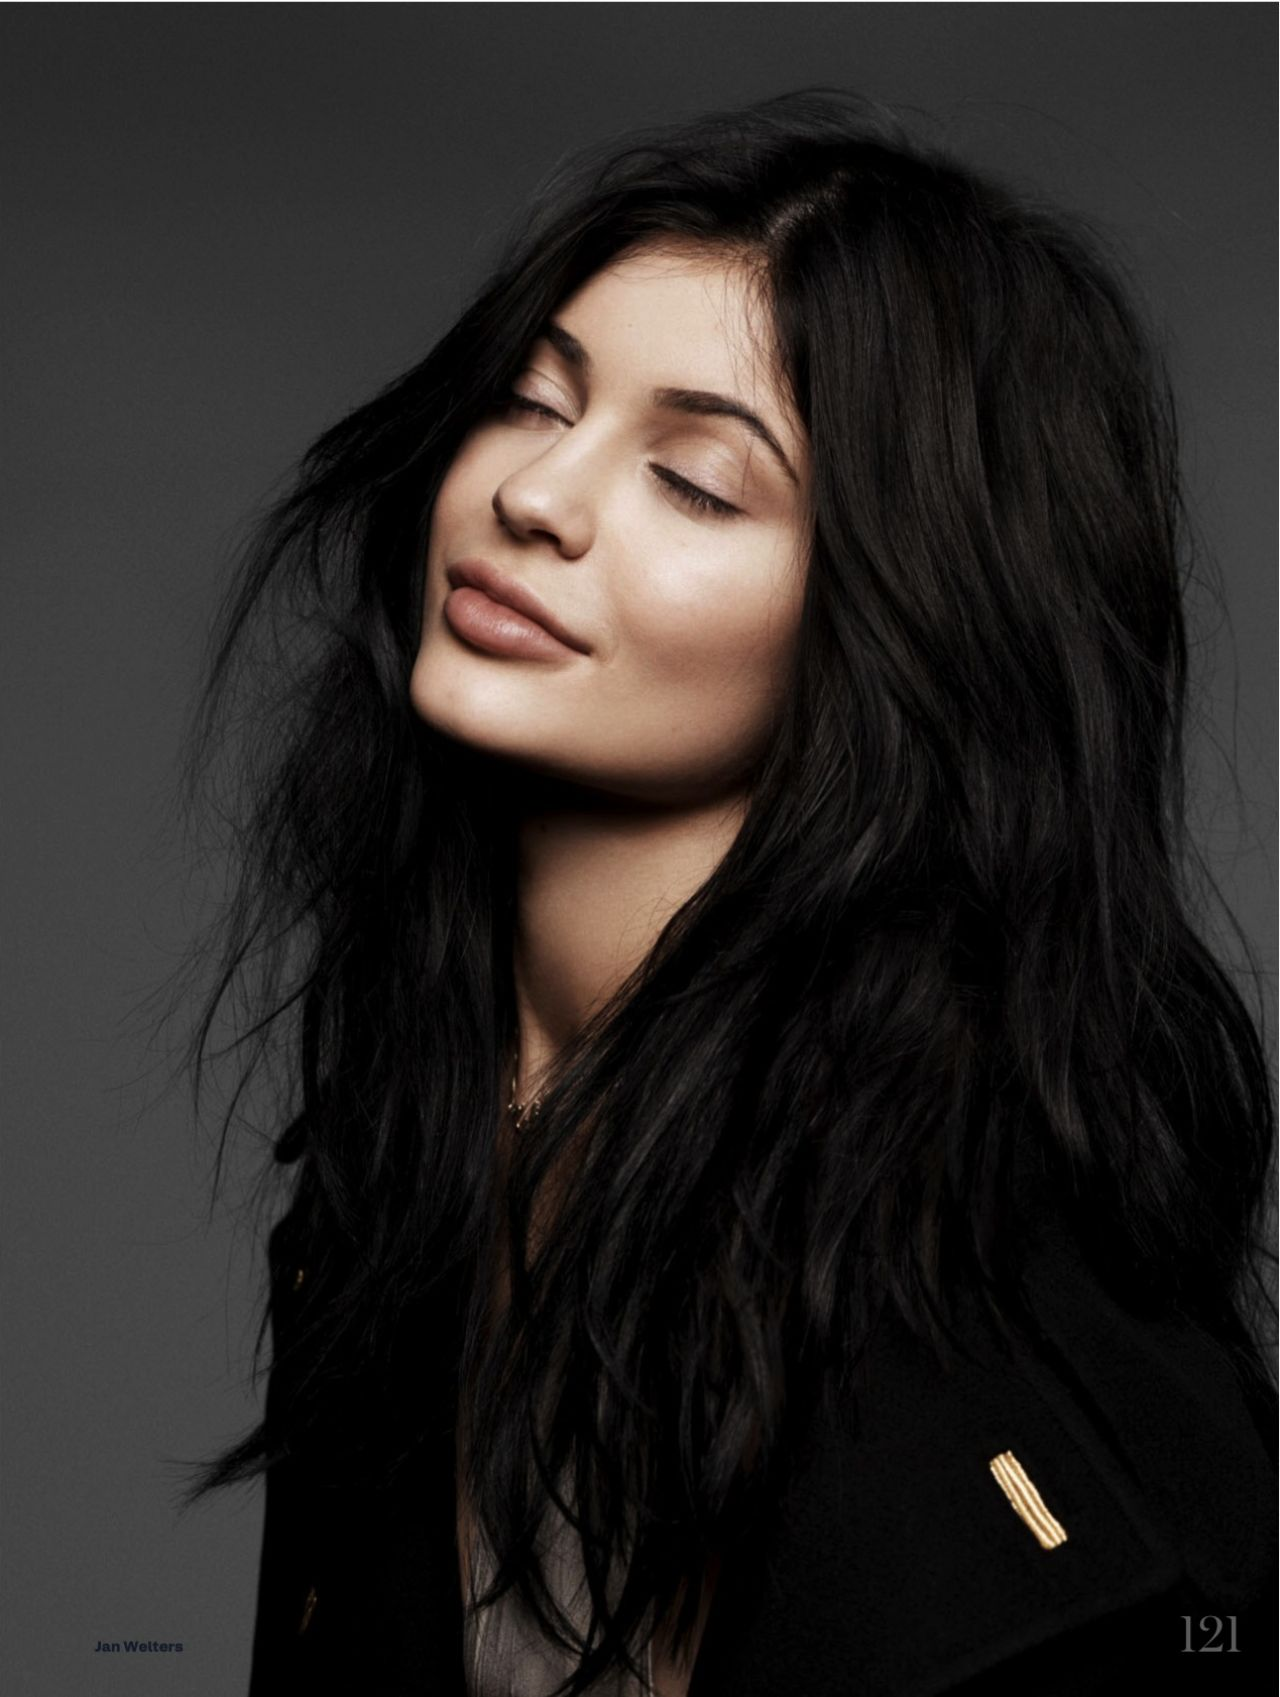 kylie jenner - photo #3